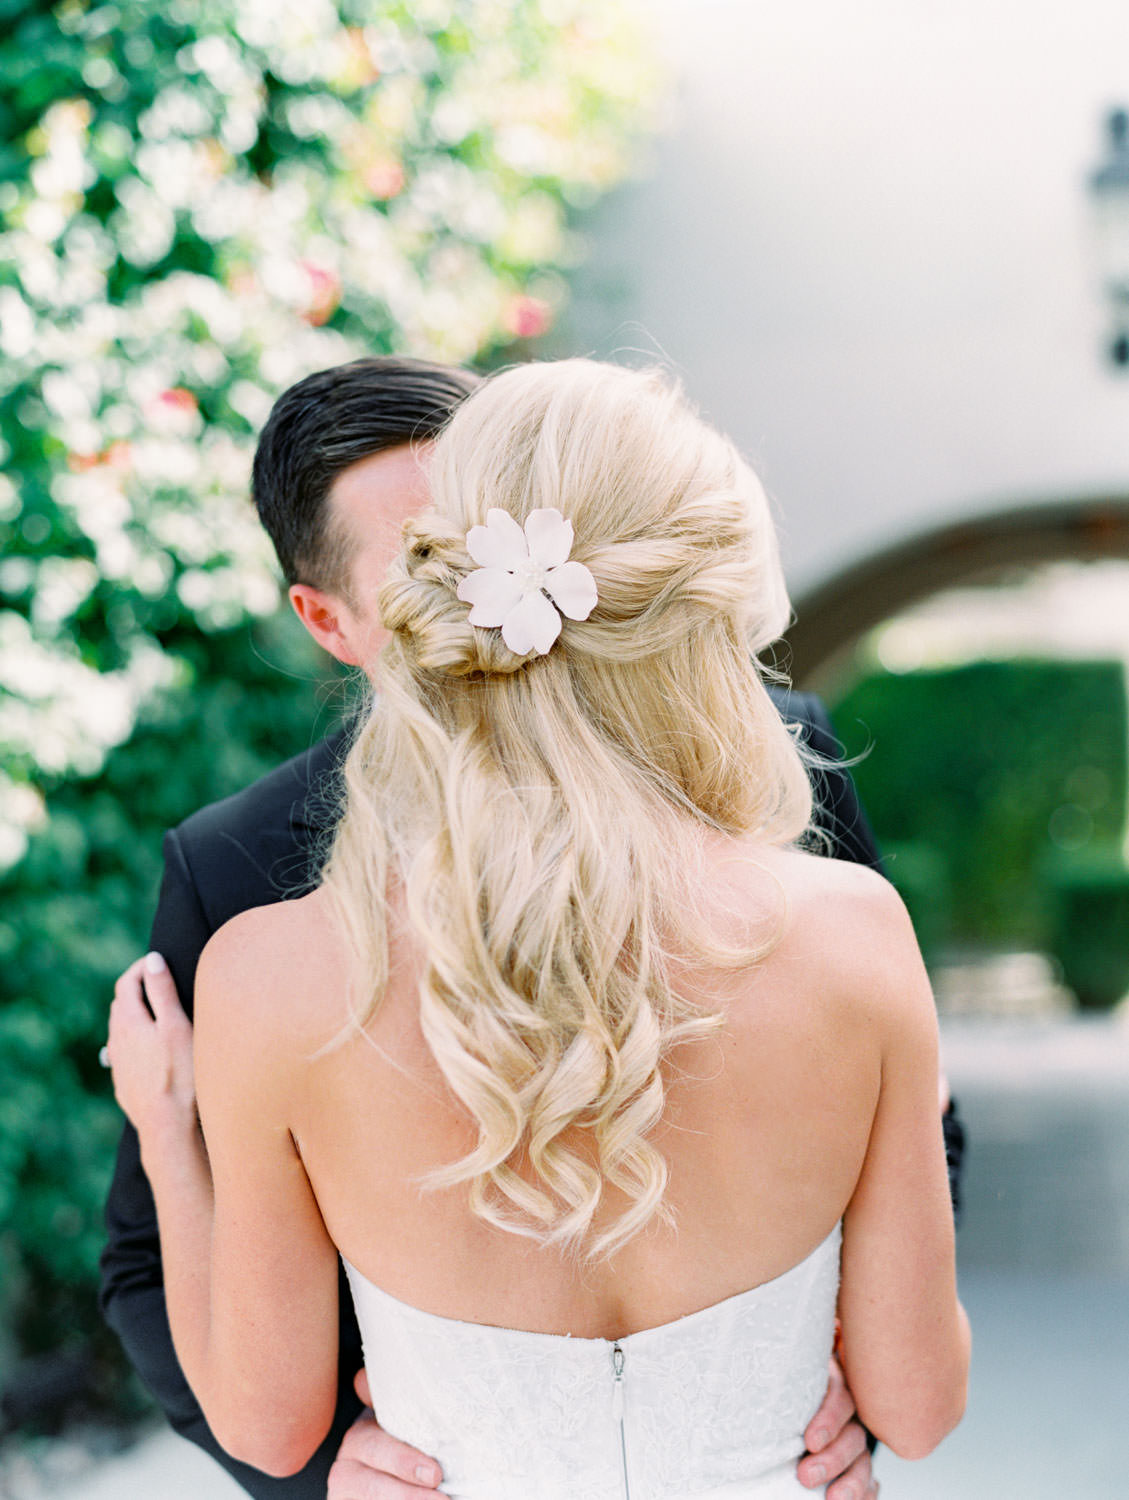 Bride's hair half up and curled with porcelain flower comb made by her mother. Miramonte Resort wedding. Film photography by Cavin Elizabeth.